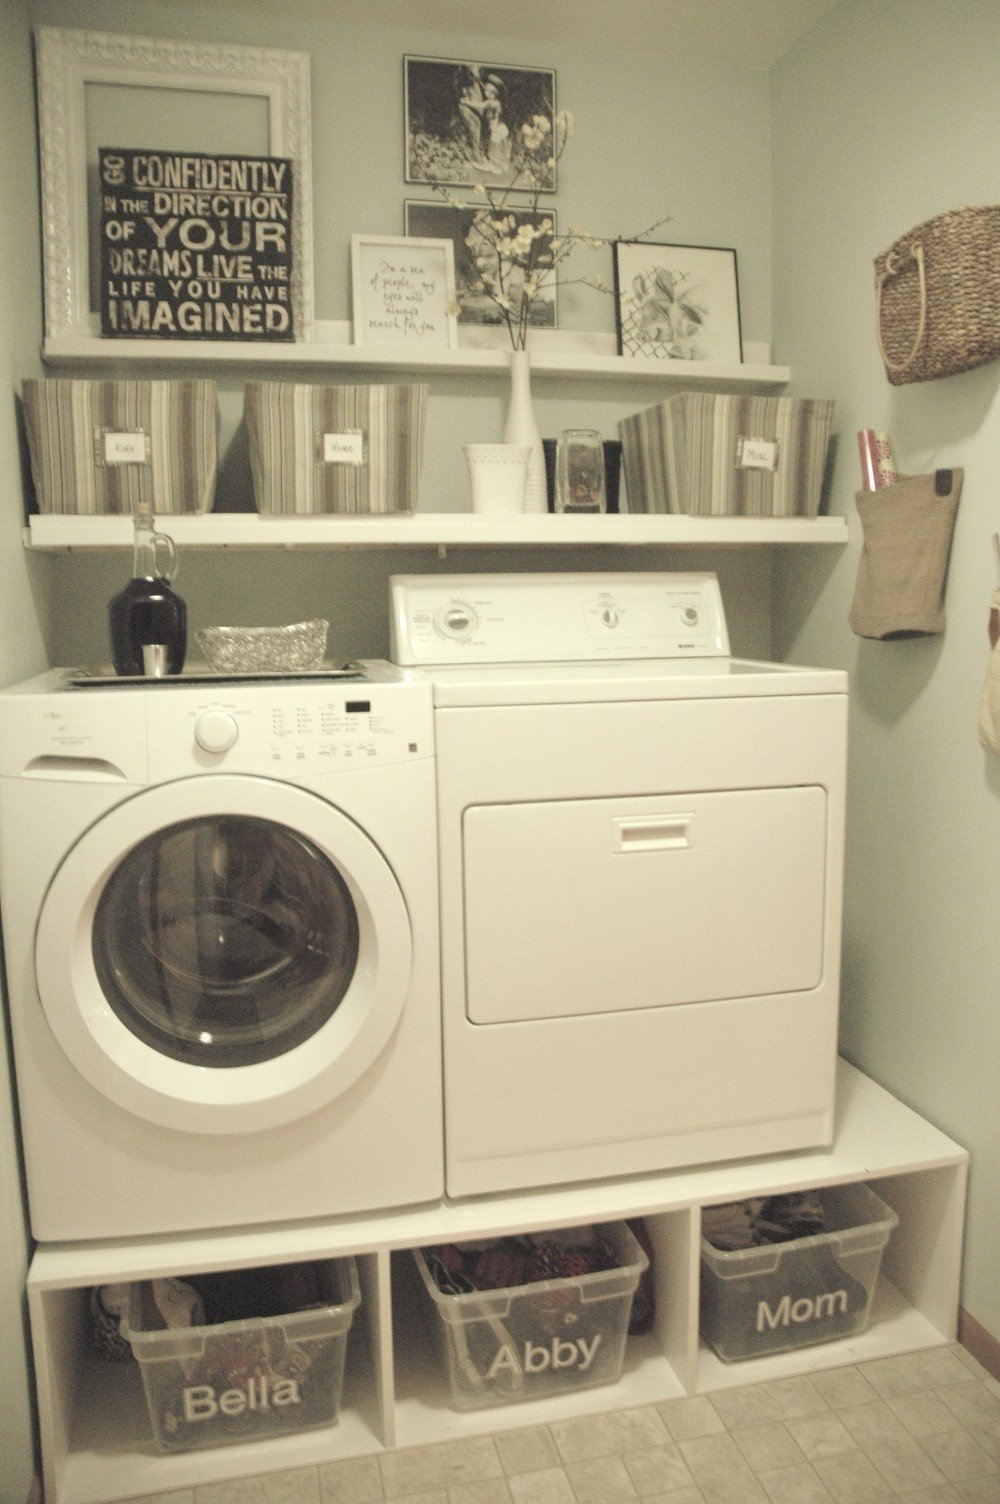 10 Fashionable Laundry Ideas For Small Space